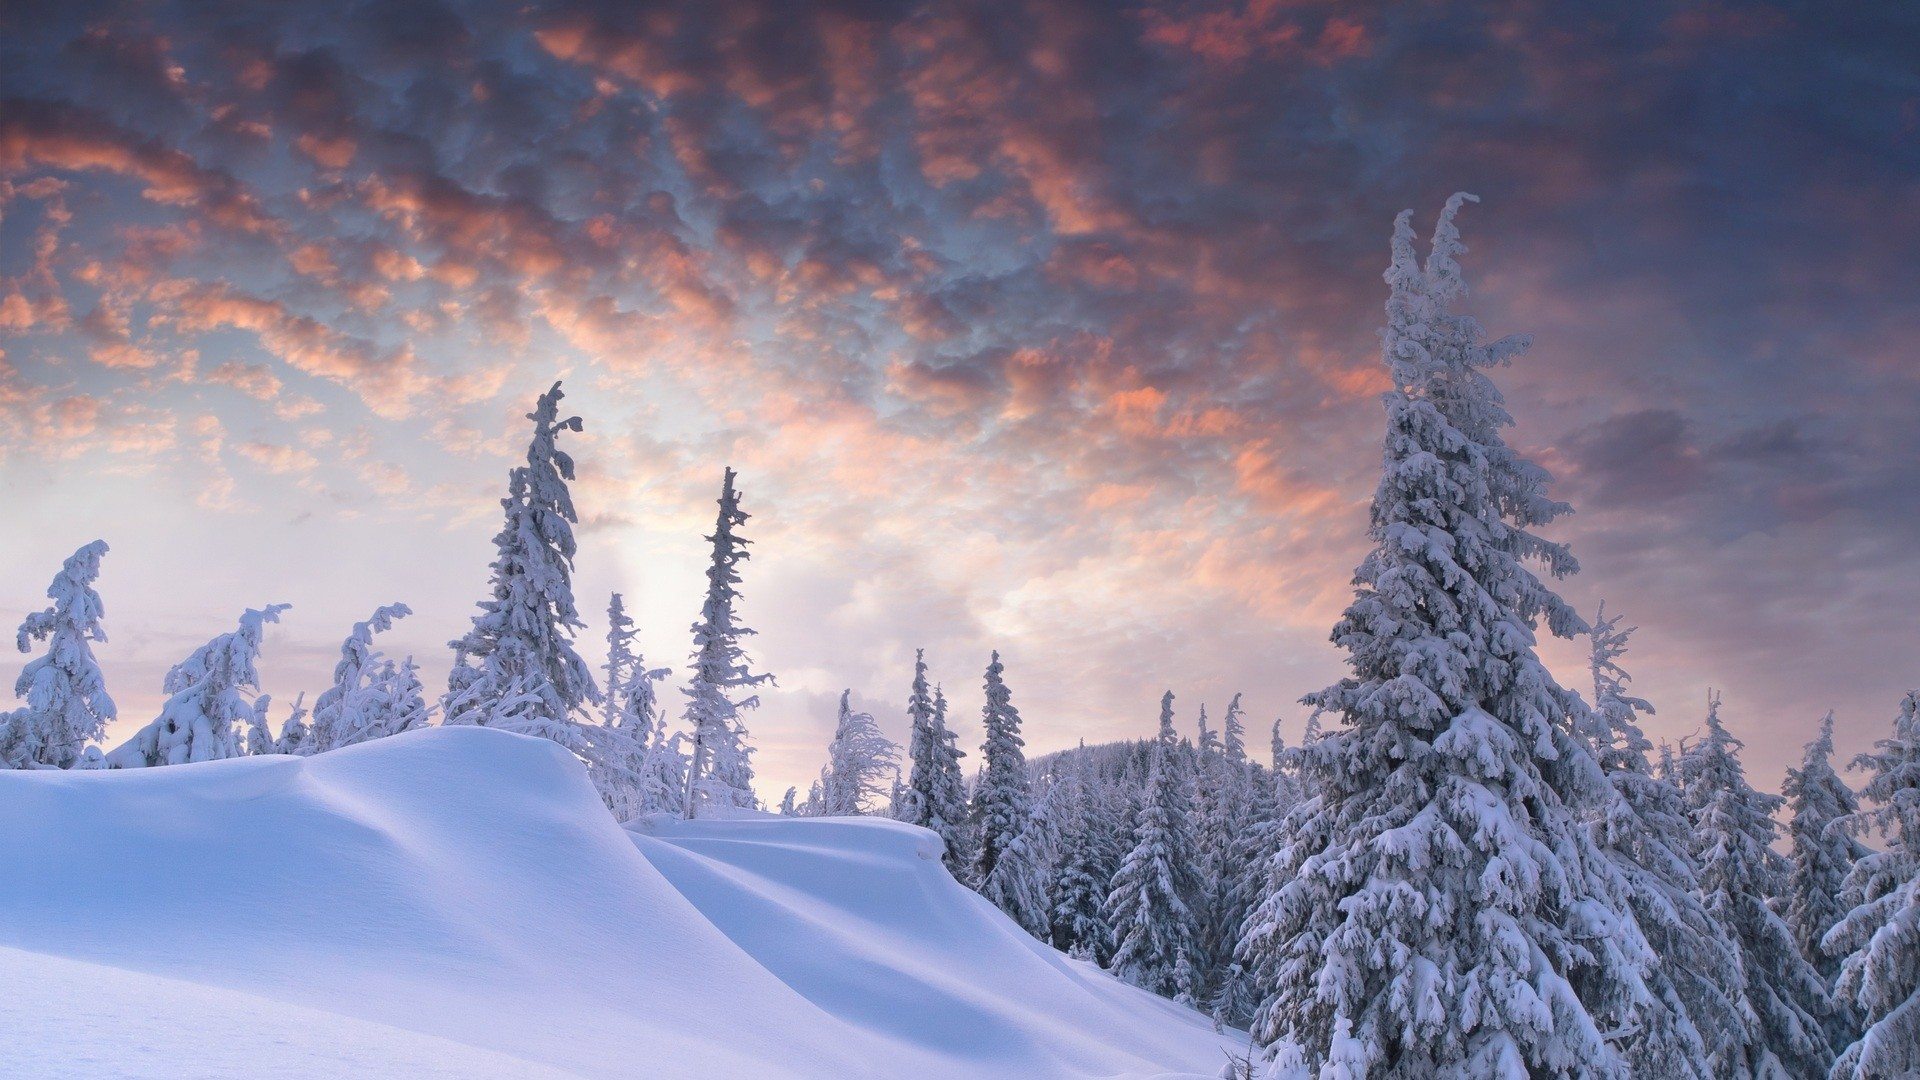 Winter and Snow Wallpaper Free Download.